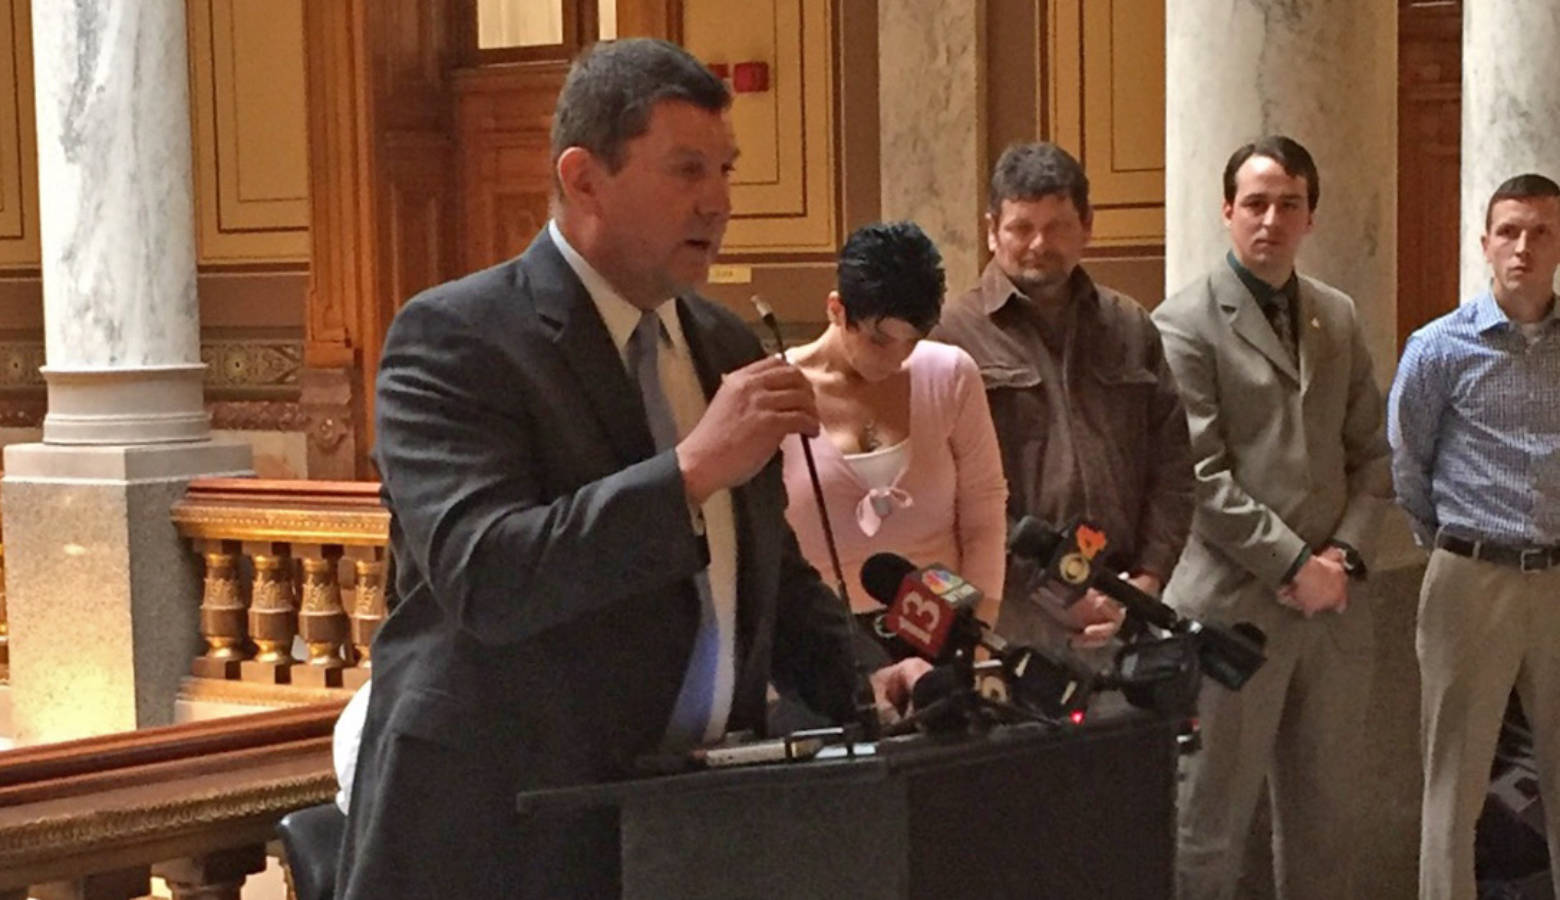 Rep. Jim Lucas (R-Seymour) speaks at the Indiana Statehouse during a press conference on his medical marijuana legislation. (Jill Sheridan/IPB News)